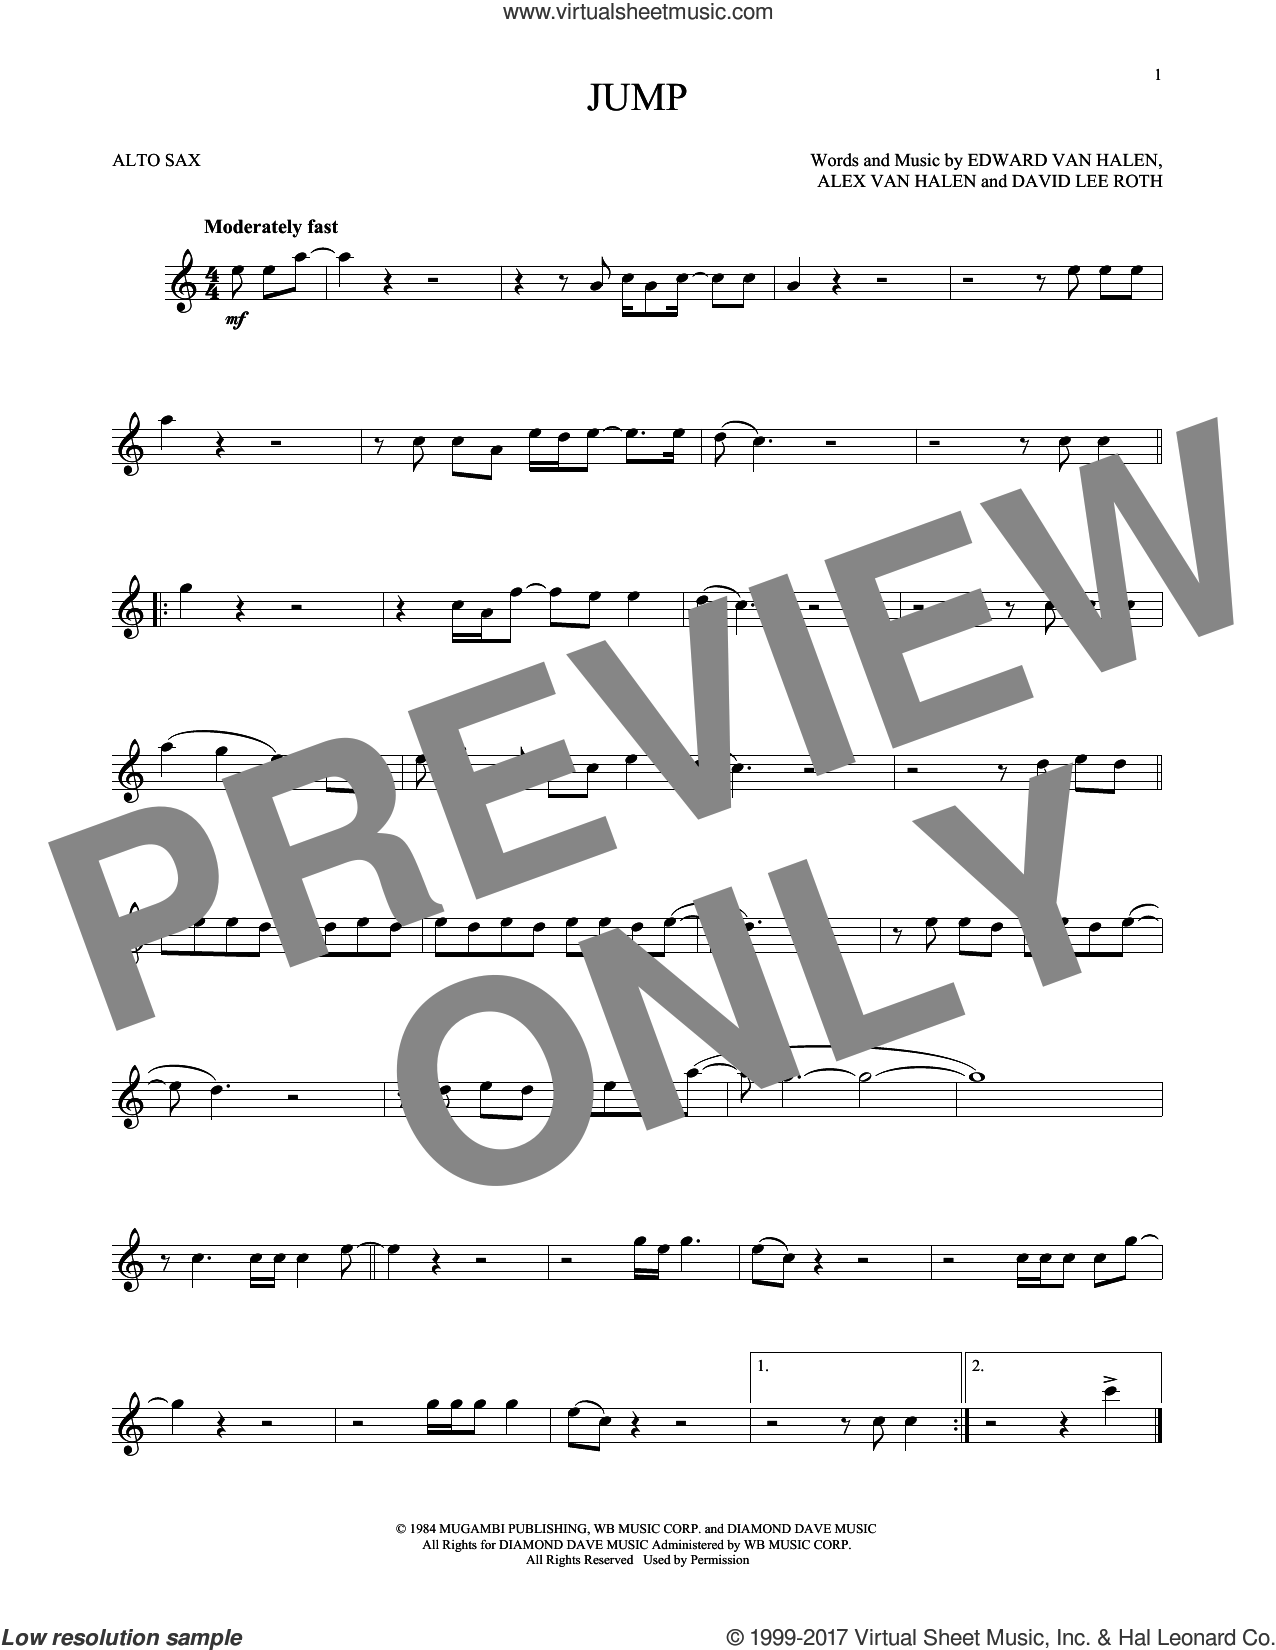 Jump sheet music for alto saxophone solo by Edward Van Halen, Alex Van Halen and David Lee Roth, intermediate skill level